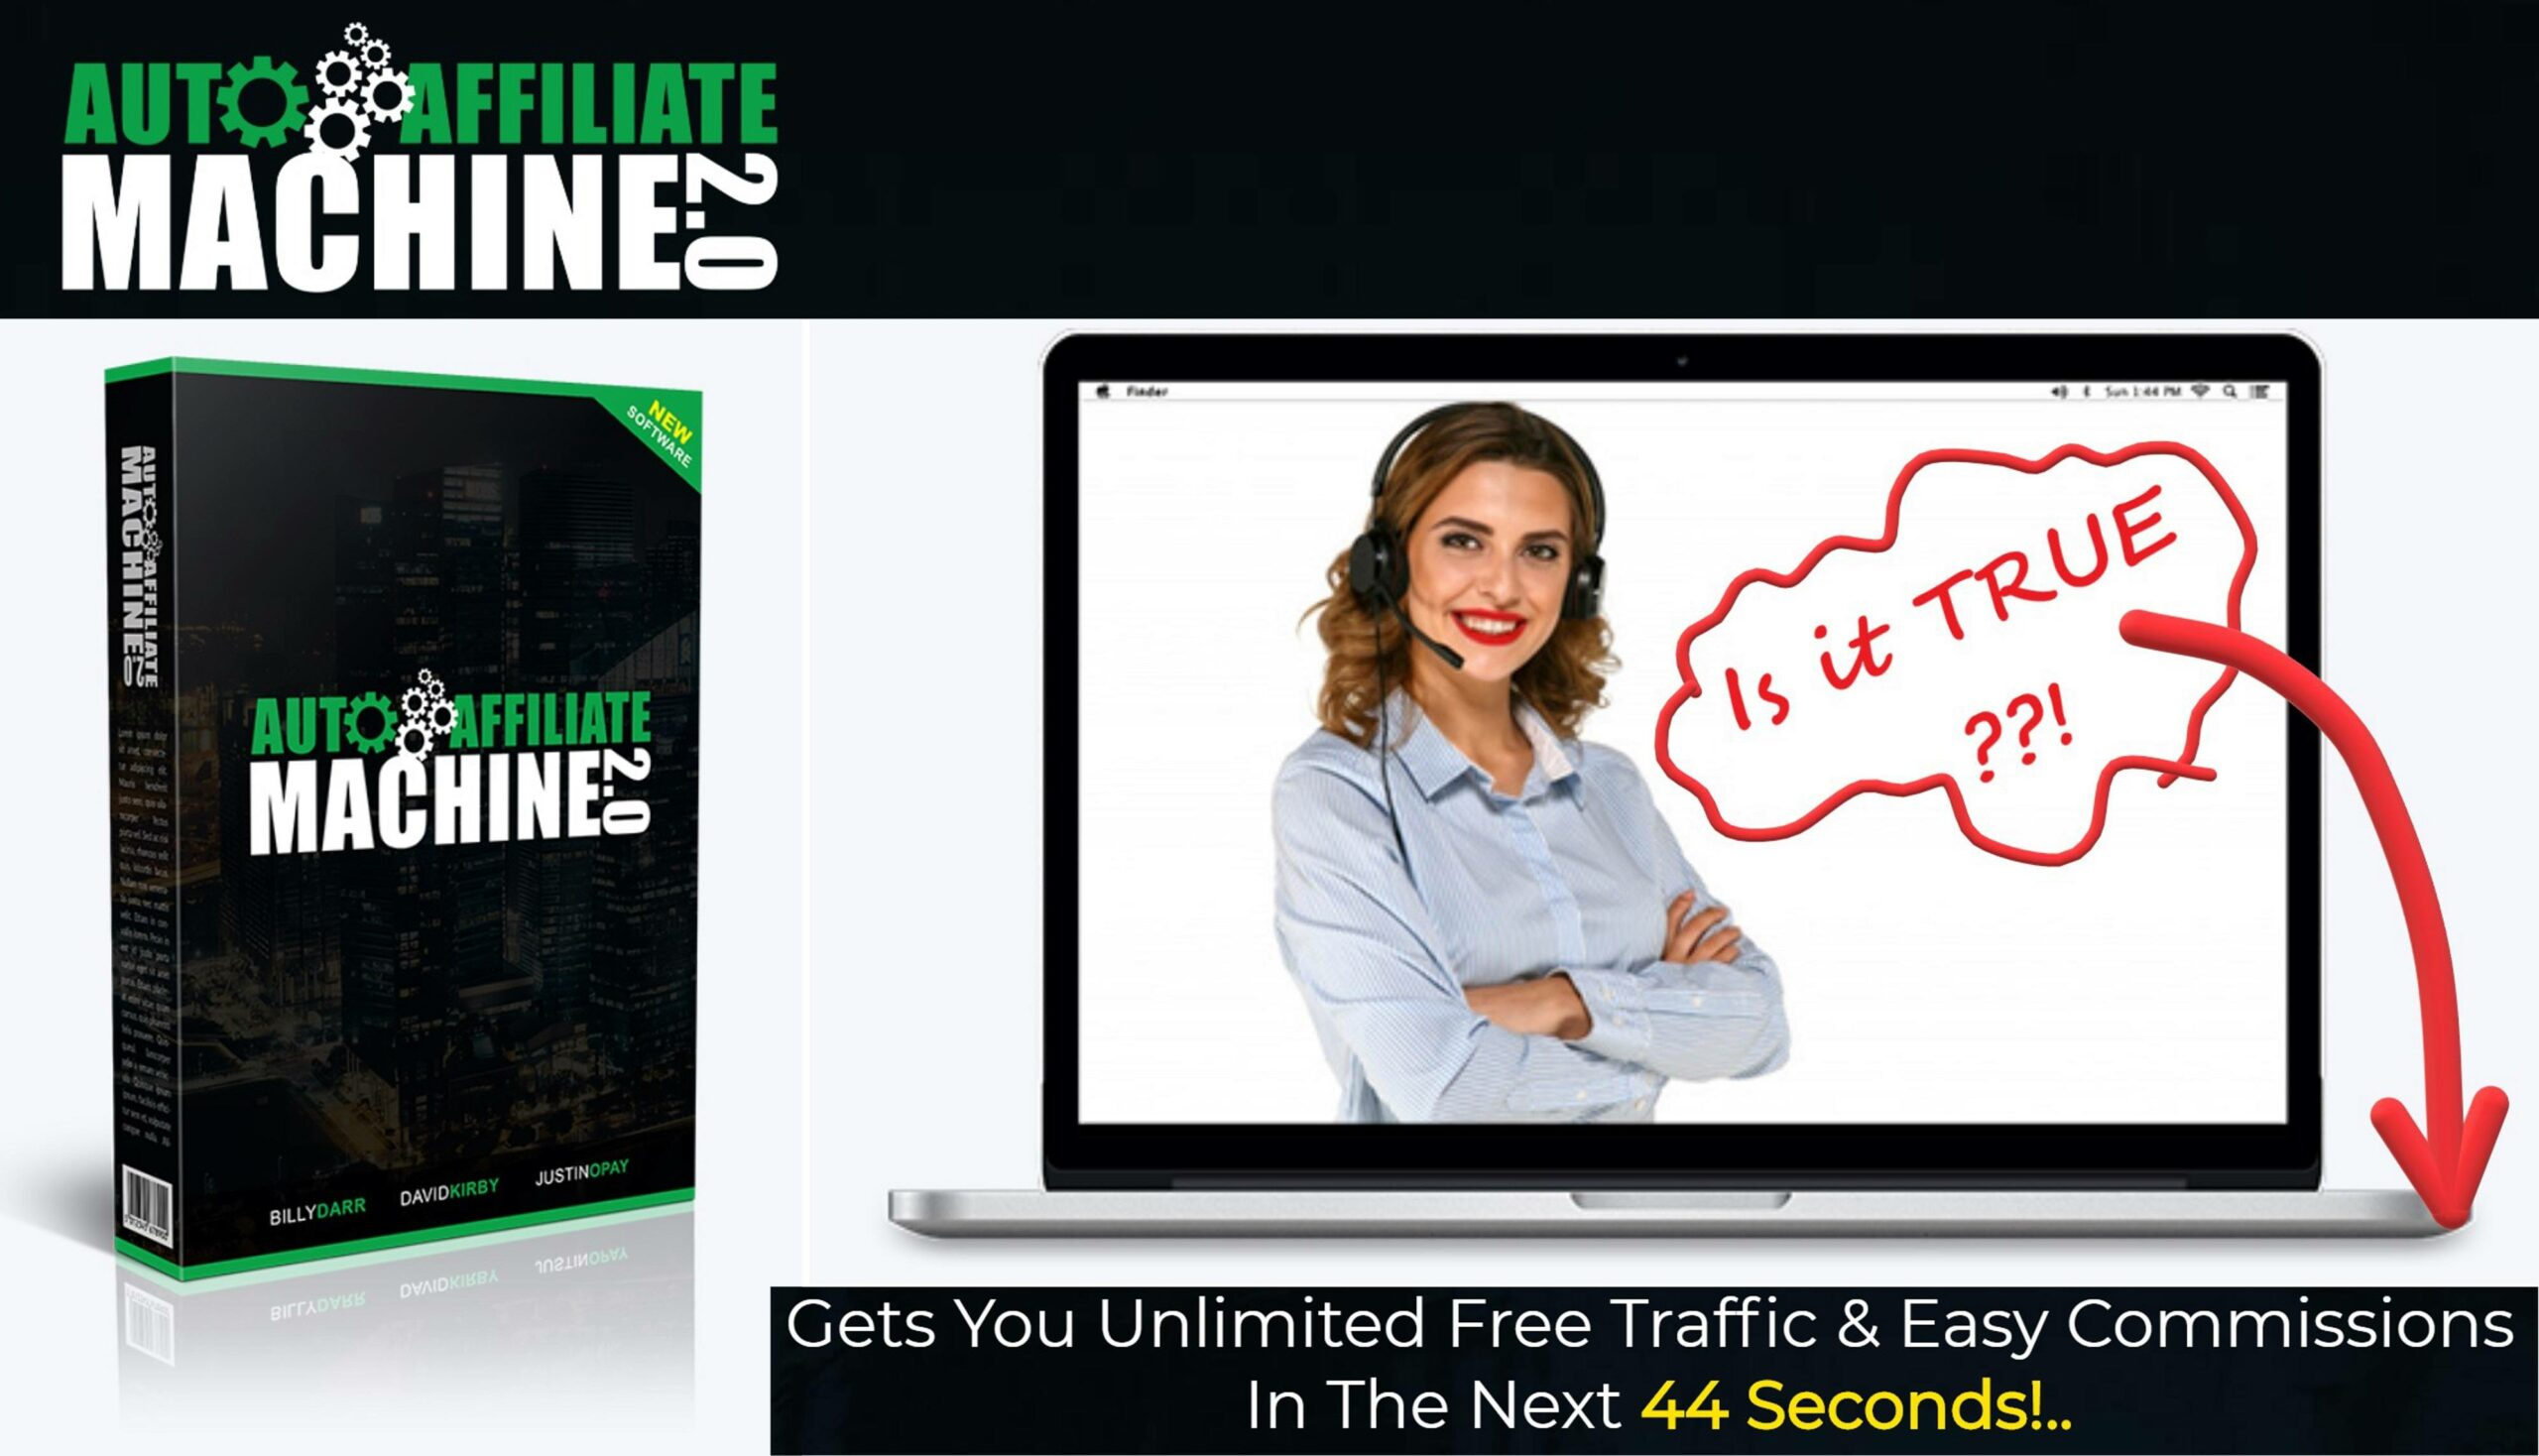 The Auto Affiliate Machine 2.0 – Is Auto Affiliate Machine Scam or Legit?